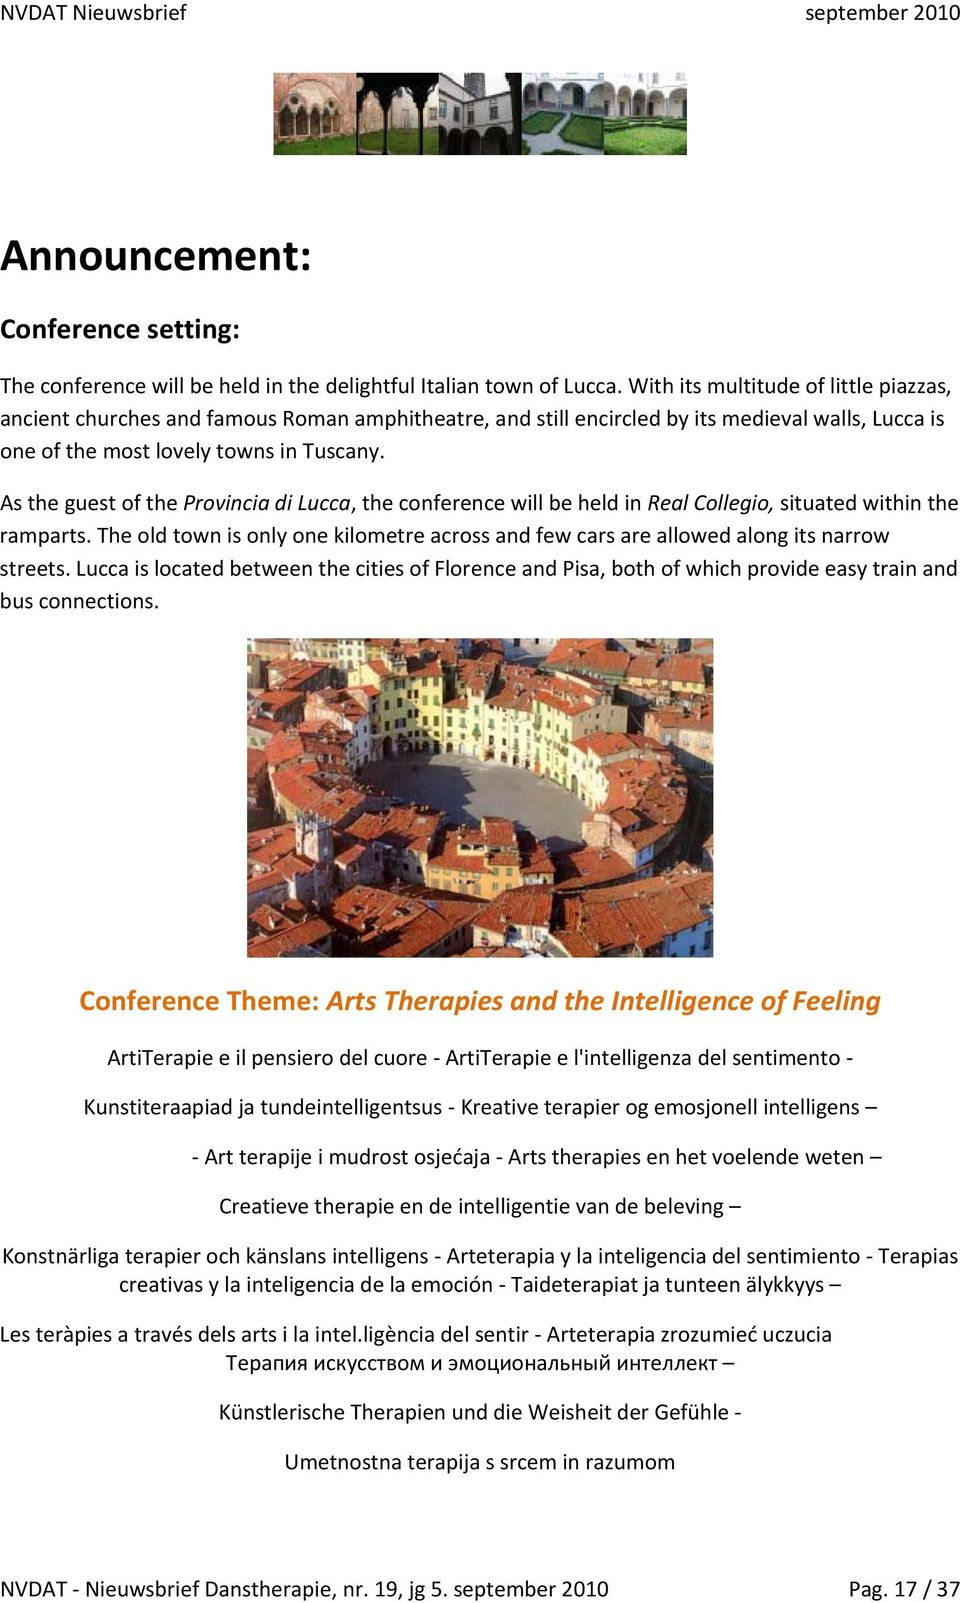 As the guest of the Provincia di Lucca, the conference will be held in Real Collegio, situated within the ramparts.